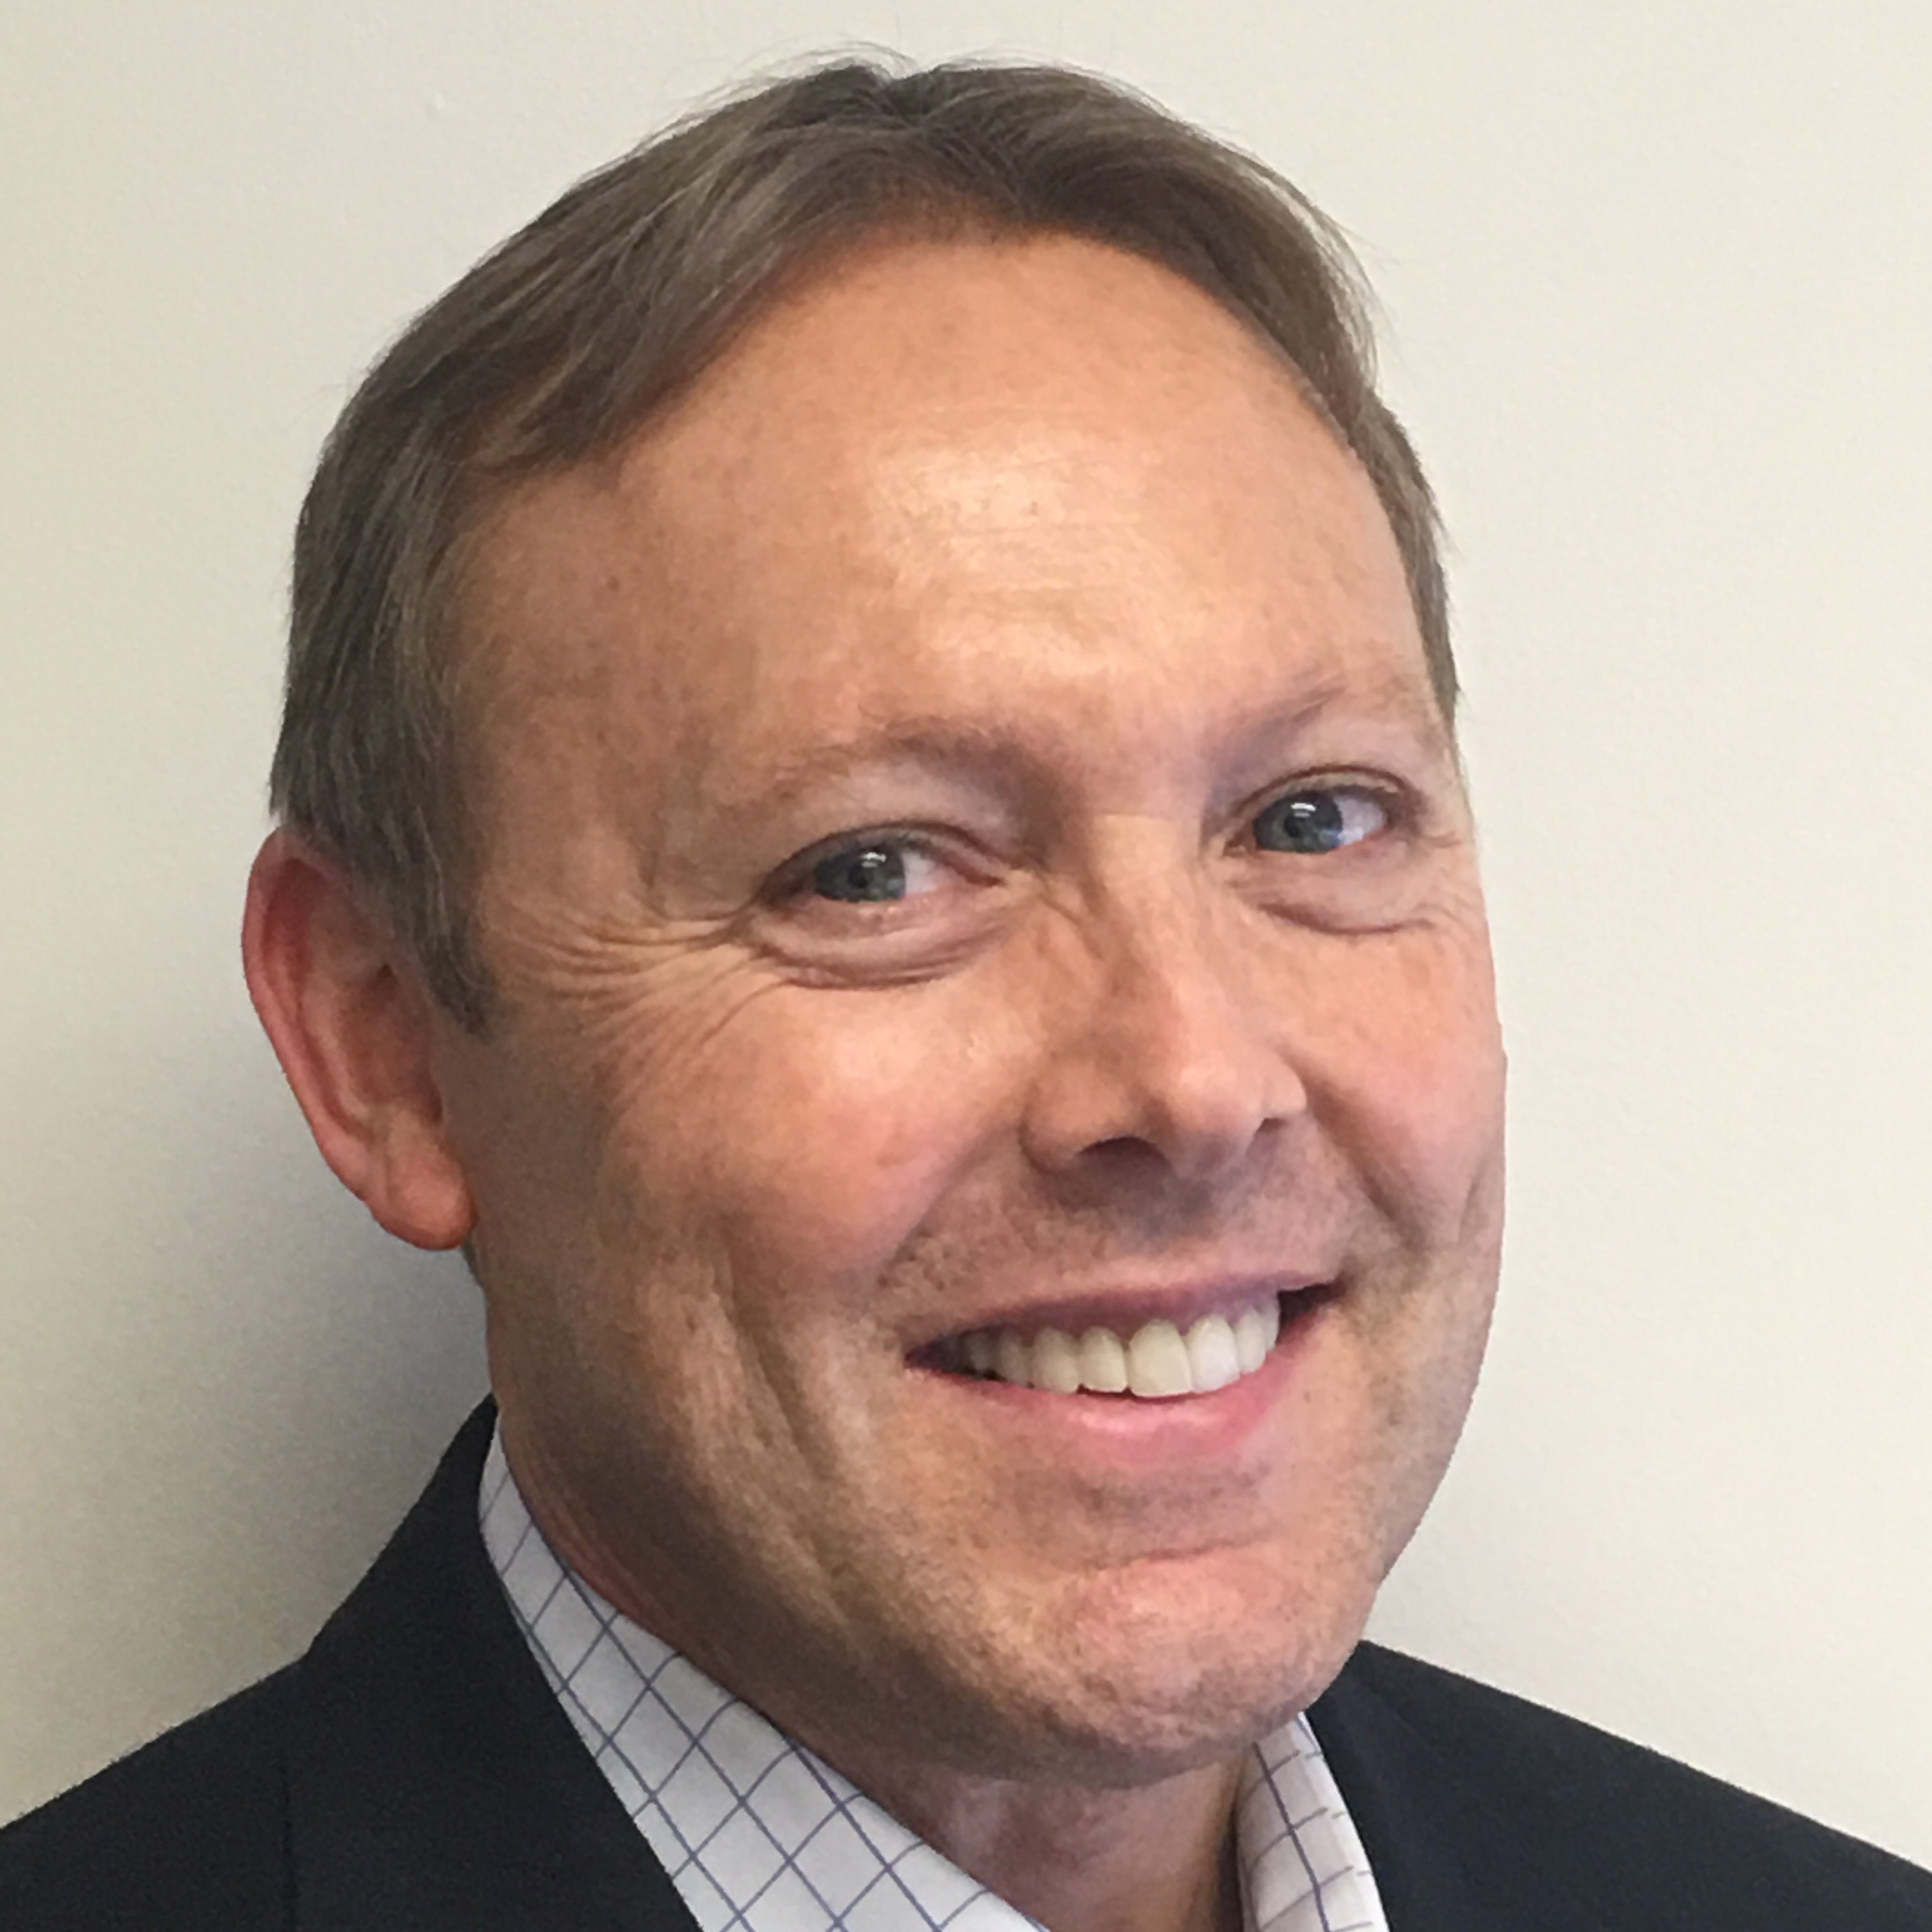 Mike Russell is the new Dallas-based CFO of Zinwave, where he will lead financial operations for the global maker of in-building wireless systems. (Photo: Business Wire)